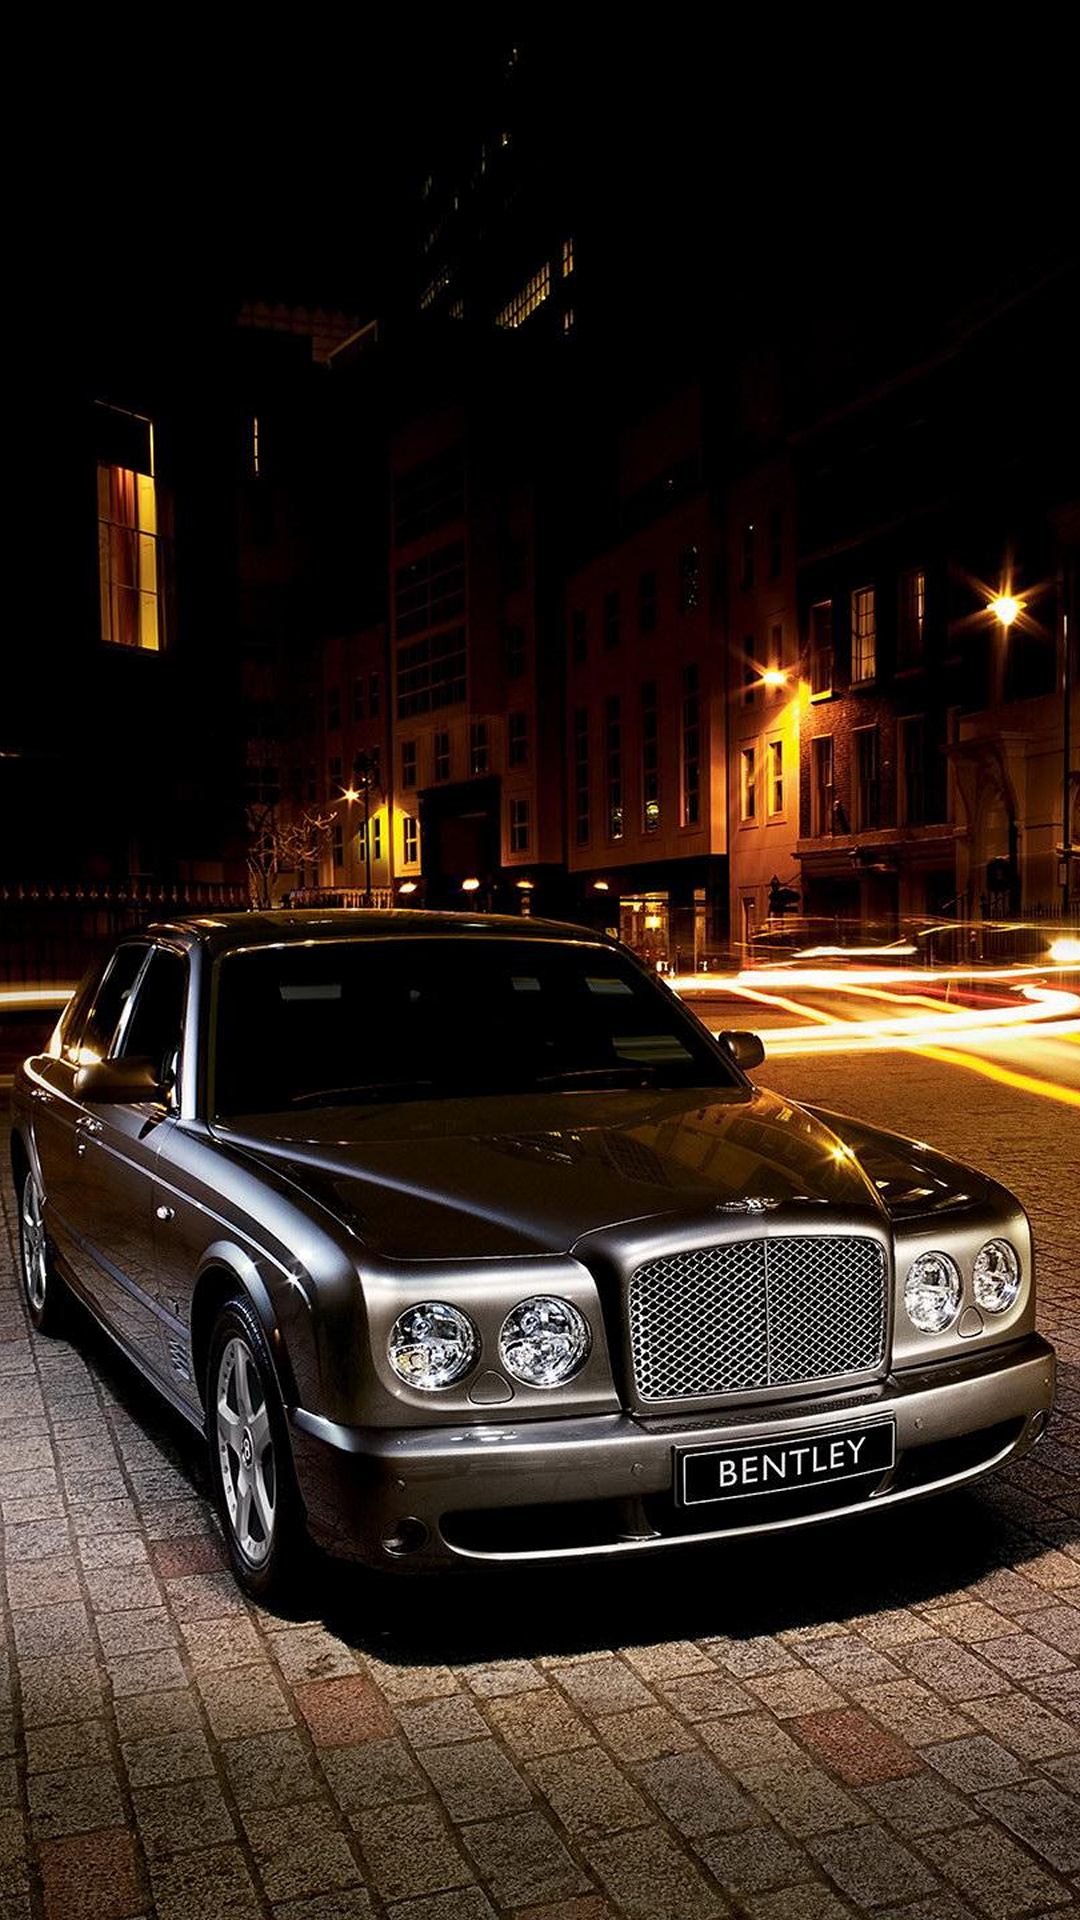 Bentley Arnage, Wallpaper, 1080x1920, Galaxy S4 thumb, fondos galaxy s4, fondos de pantalla galaxy s4, sfondi samsung galaxy s4, hintergrund, ????